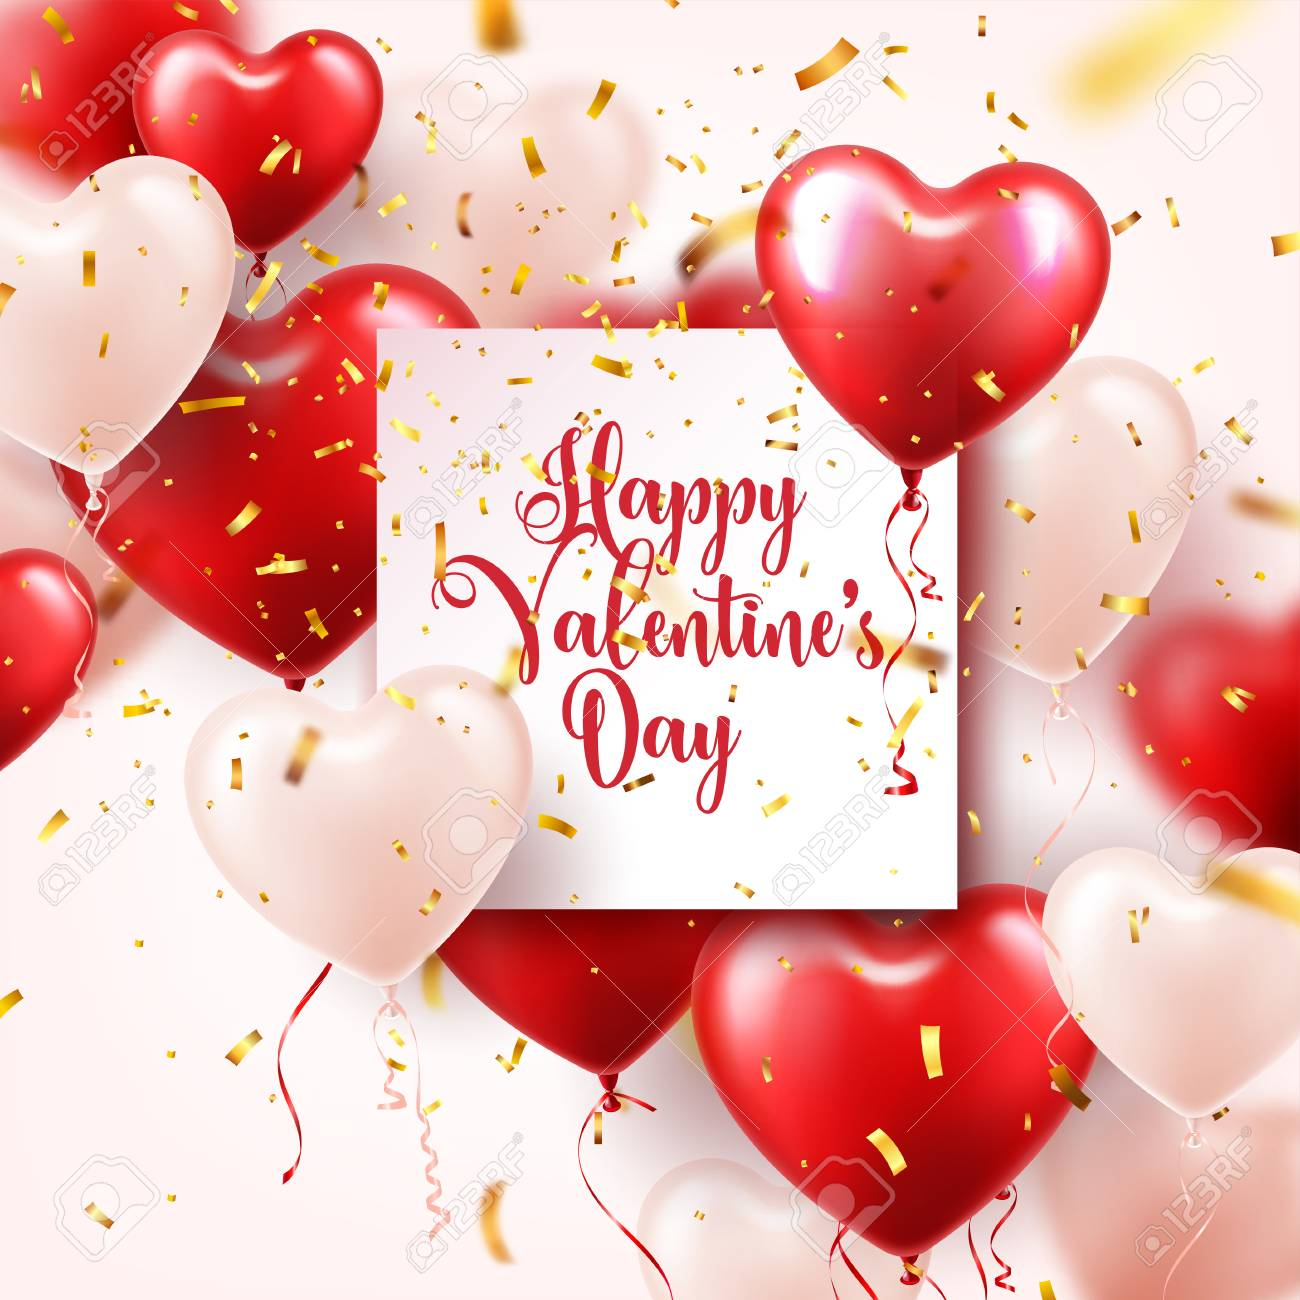 Valentine's day abstract background with red 3d heart shaped balloons and golden confetti. - 94859444